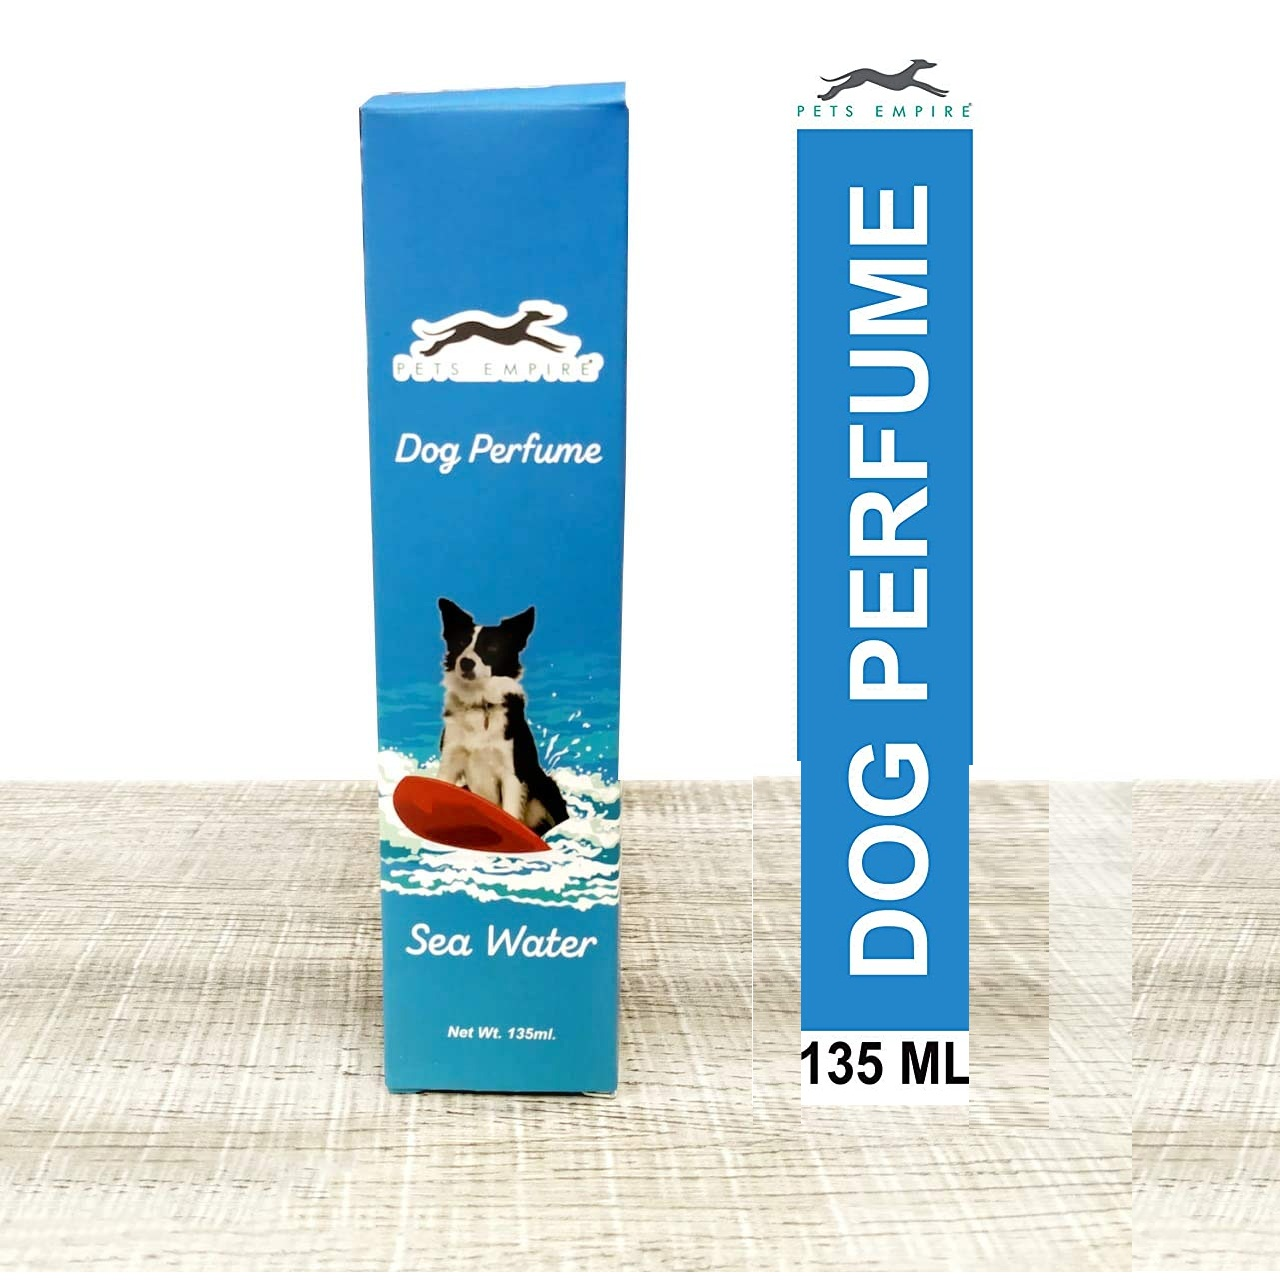 Pets Empire Dog Perfumes,135 ML-Pack Of 1 (Sea Water)